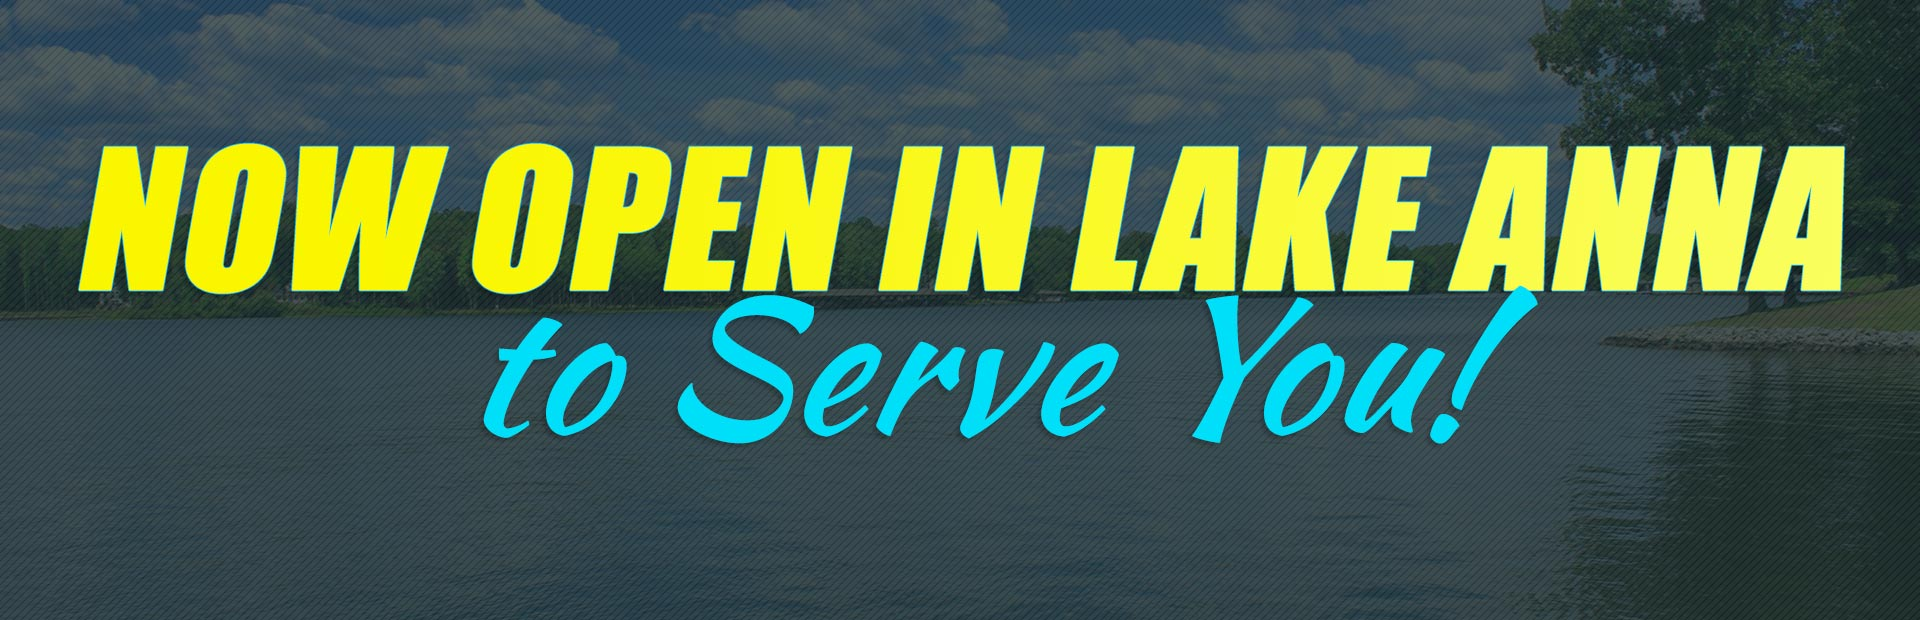 Now open in Lake Anna to serve you! Click here for details.